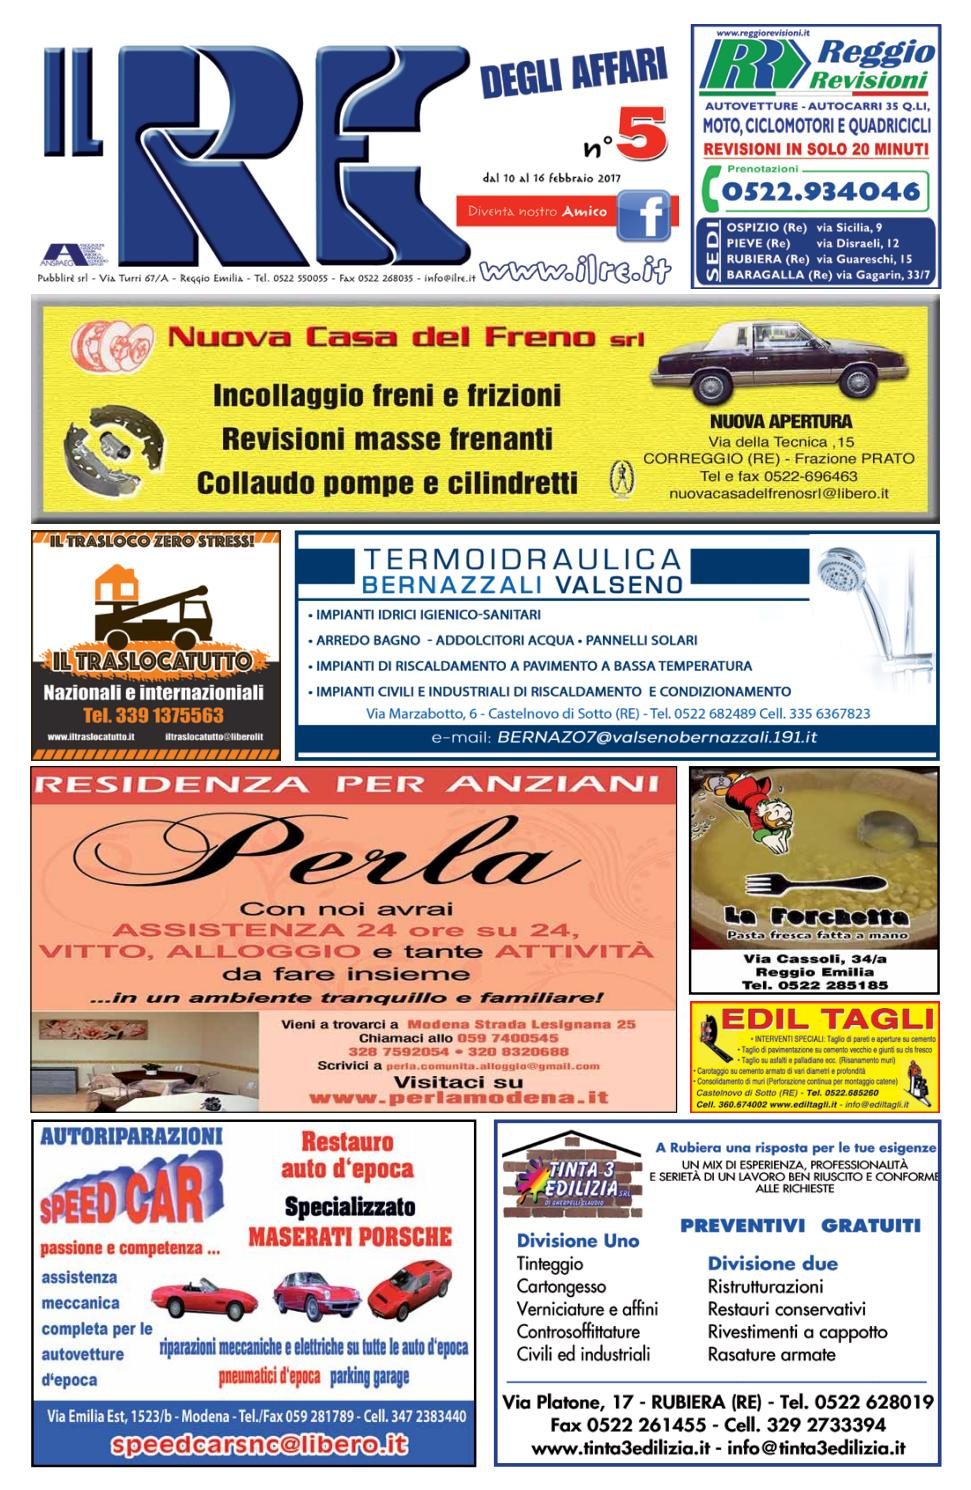 IL RE DEGLI AFFARI NR. 05 2016 by Il Re degli Affari - issuu ece96cd5bc3